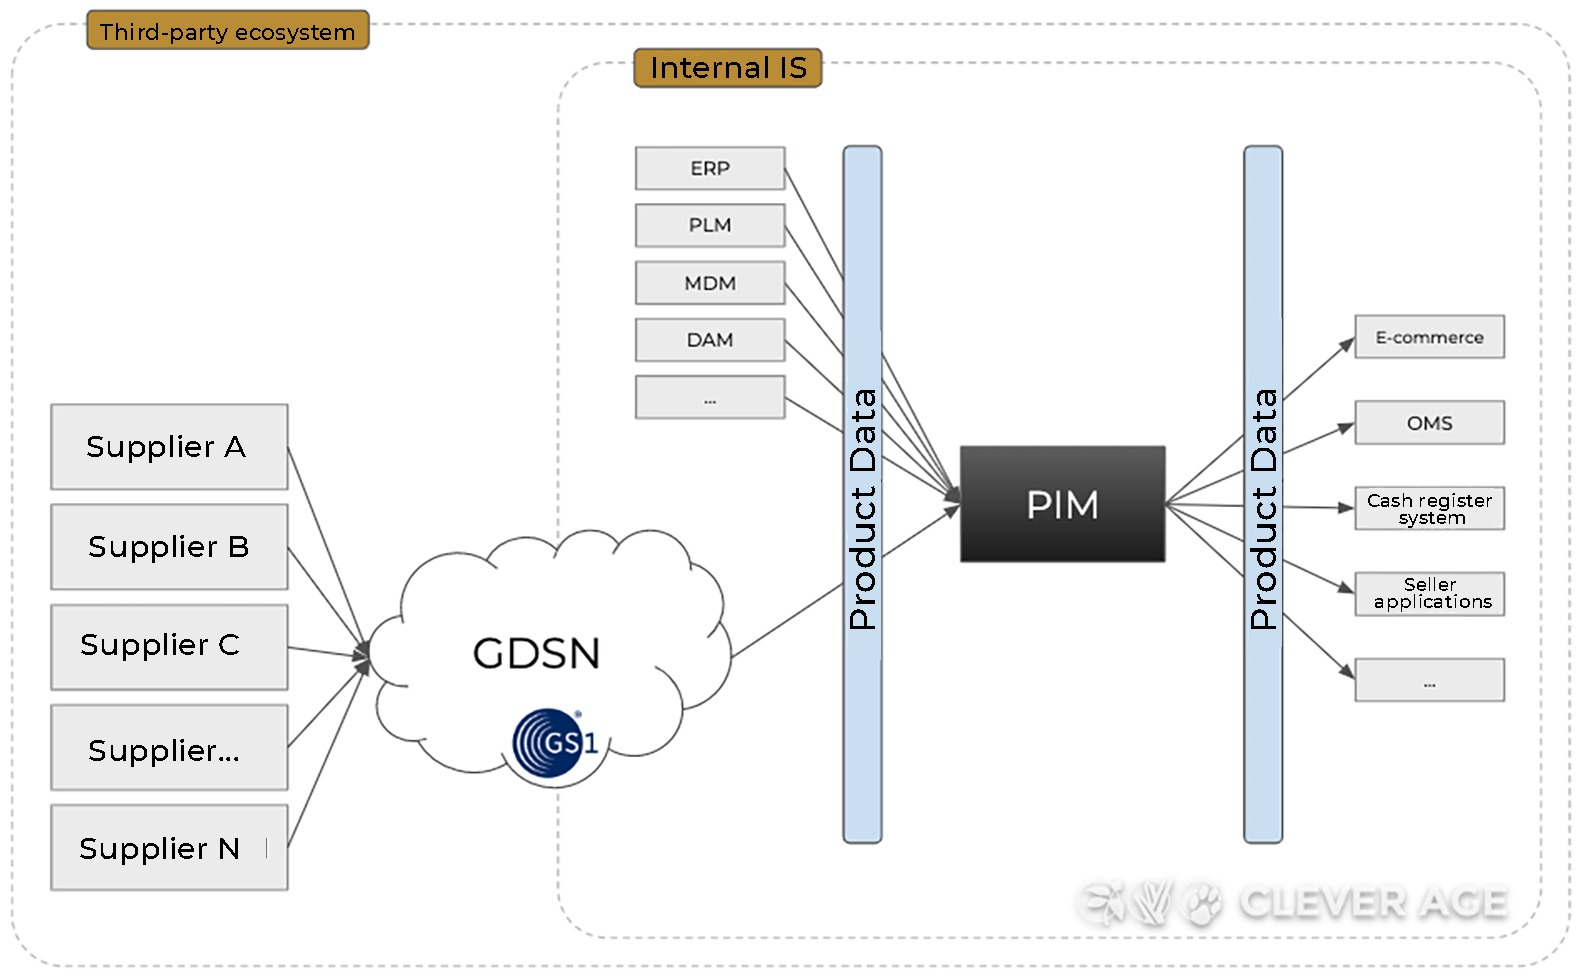 Architecture with multiple third-party flows via GDSN (distributor view)